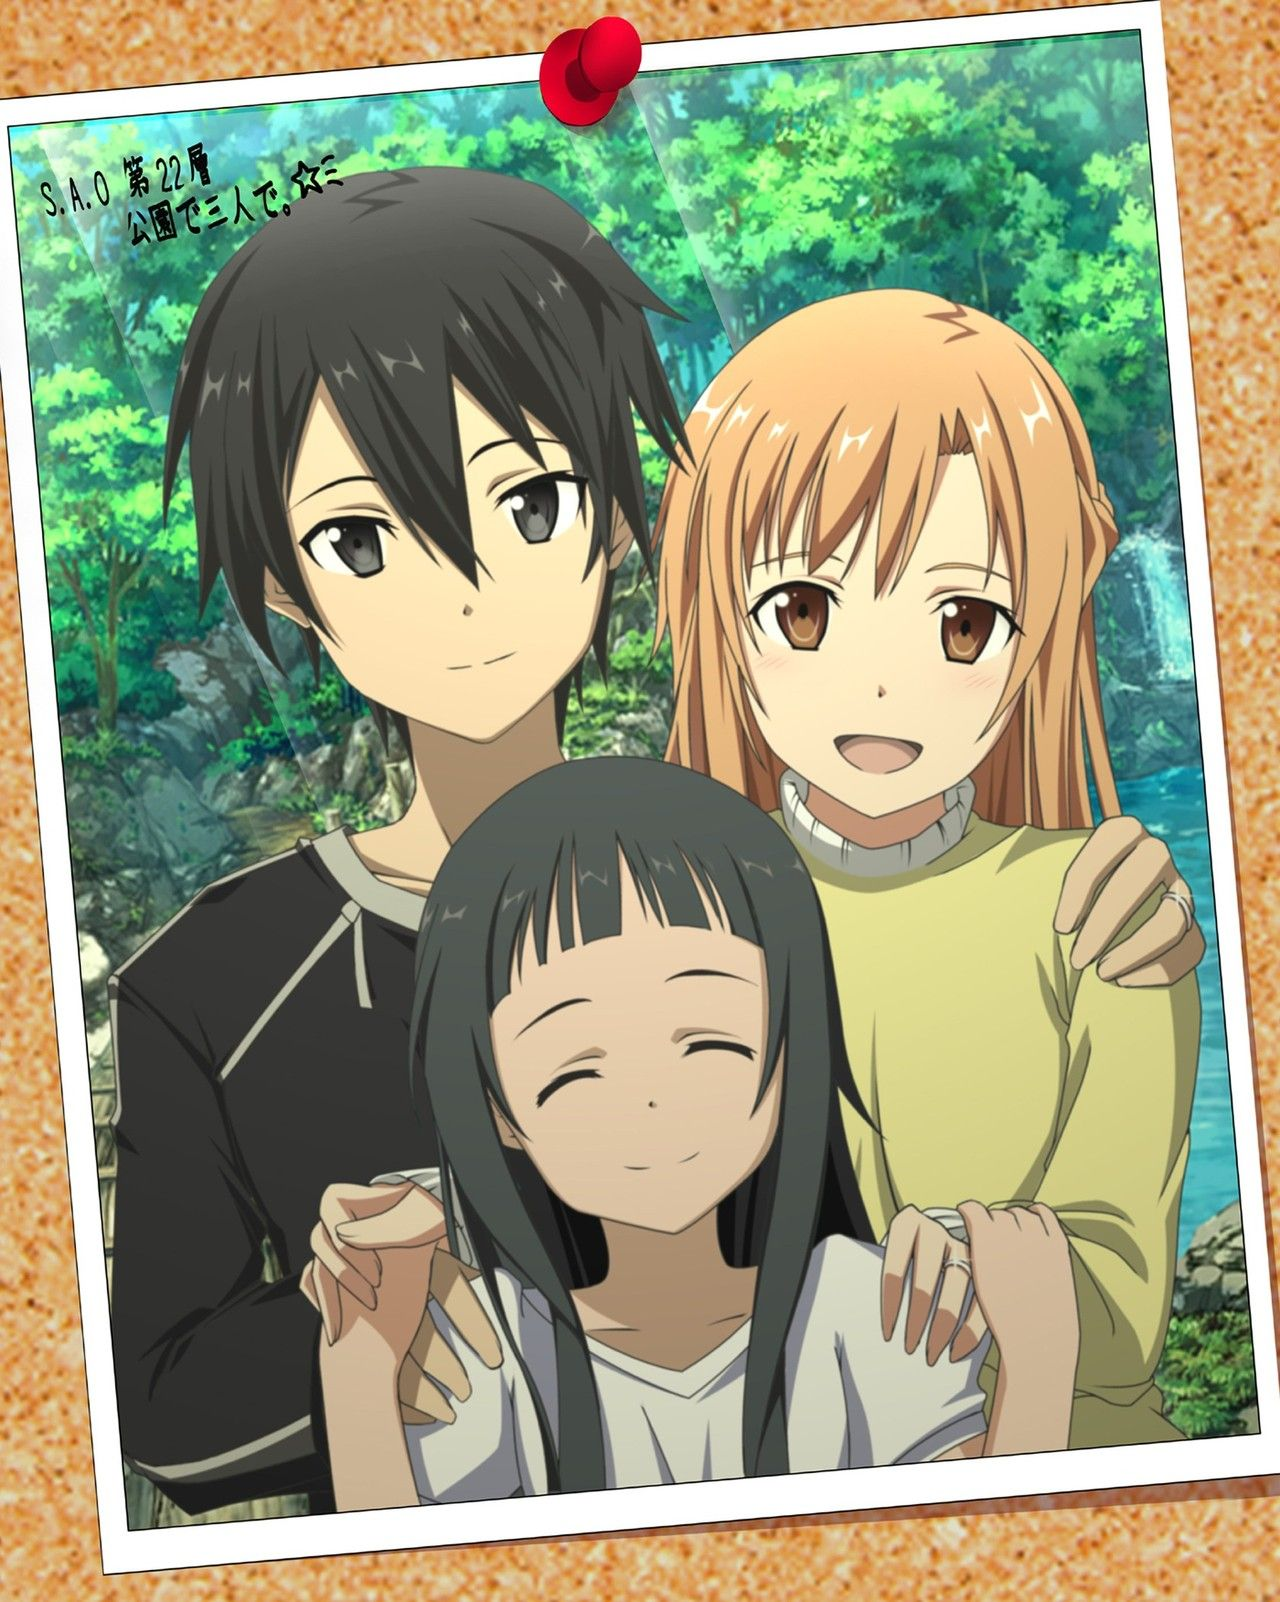 Sword Art Online Family Portrait by Sirius Anime